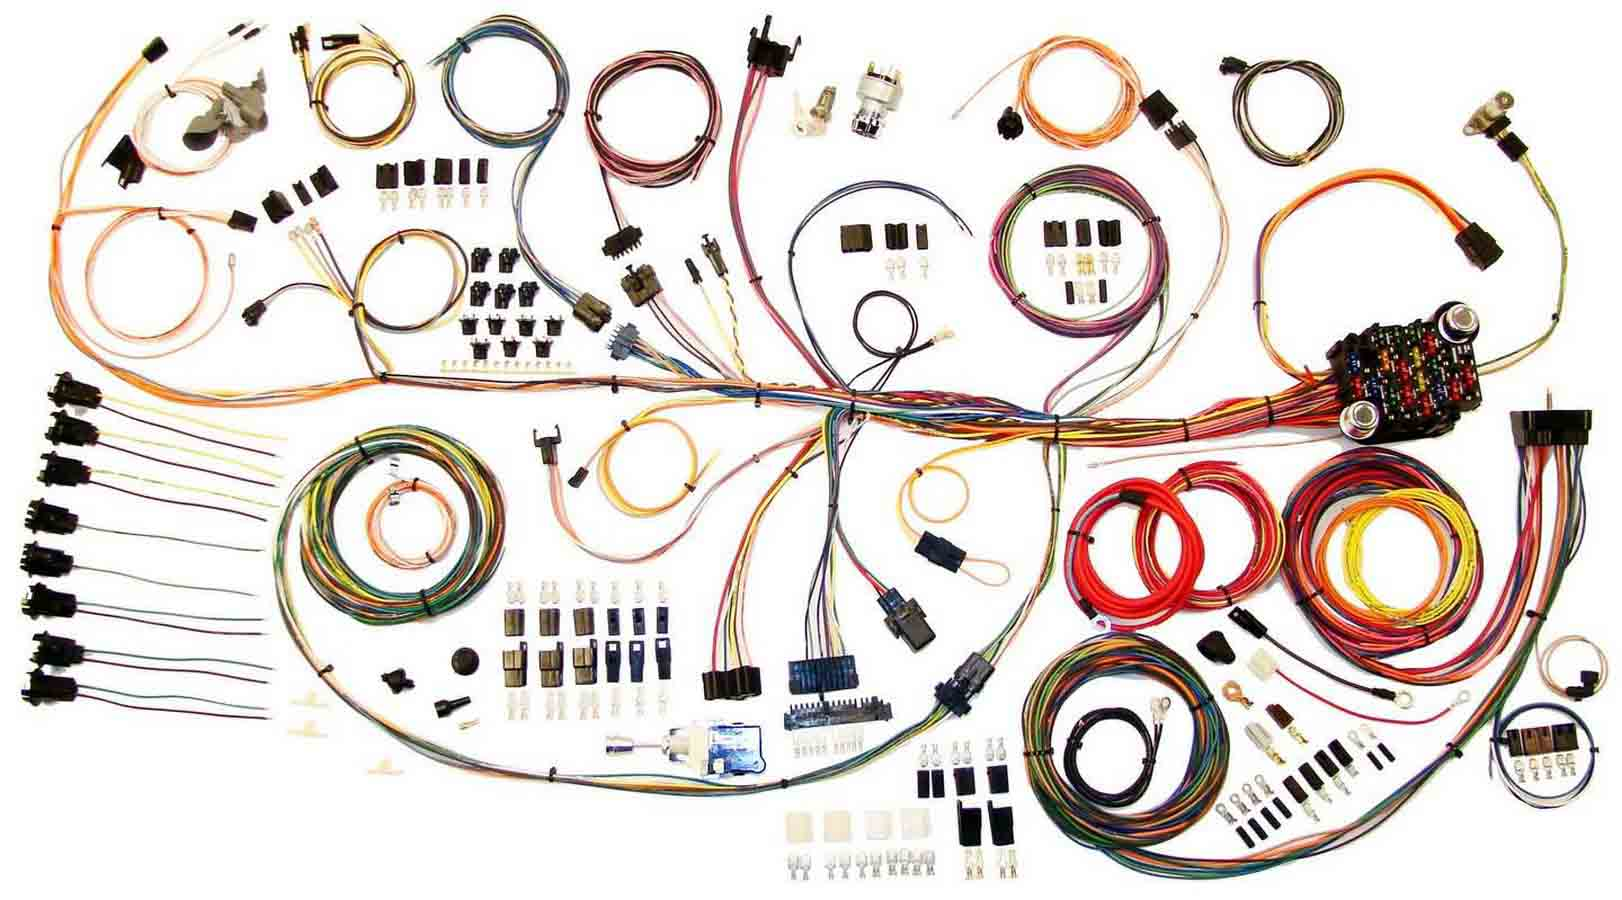 64-67 GTO Wiring Harness